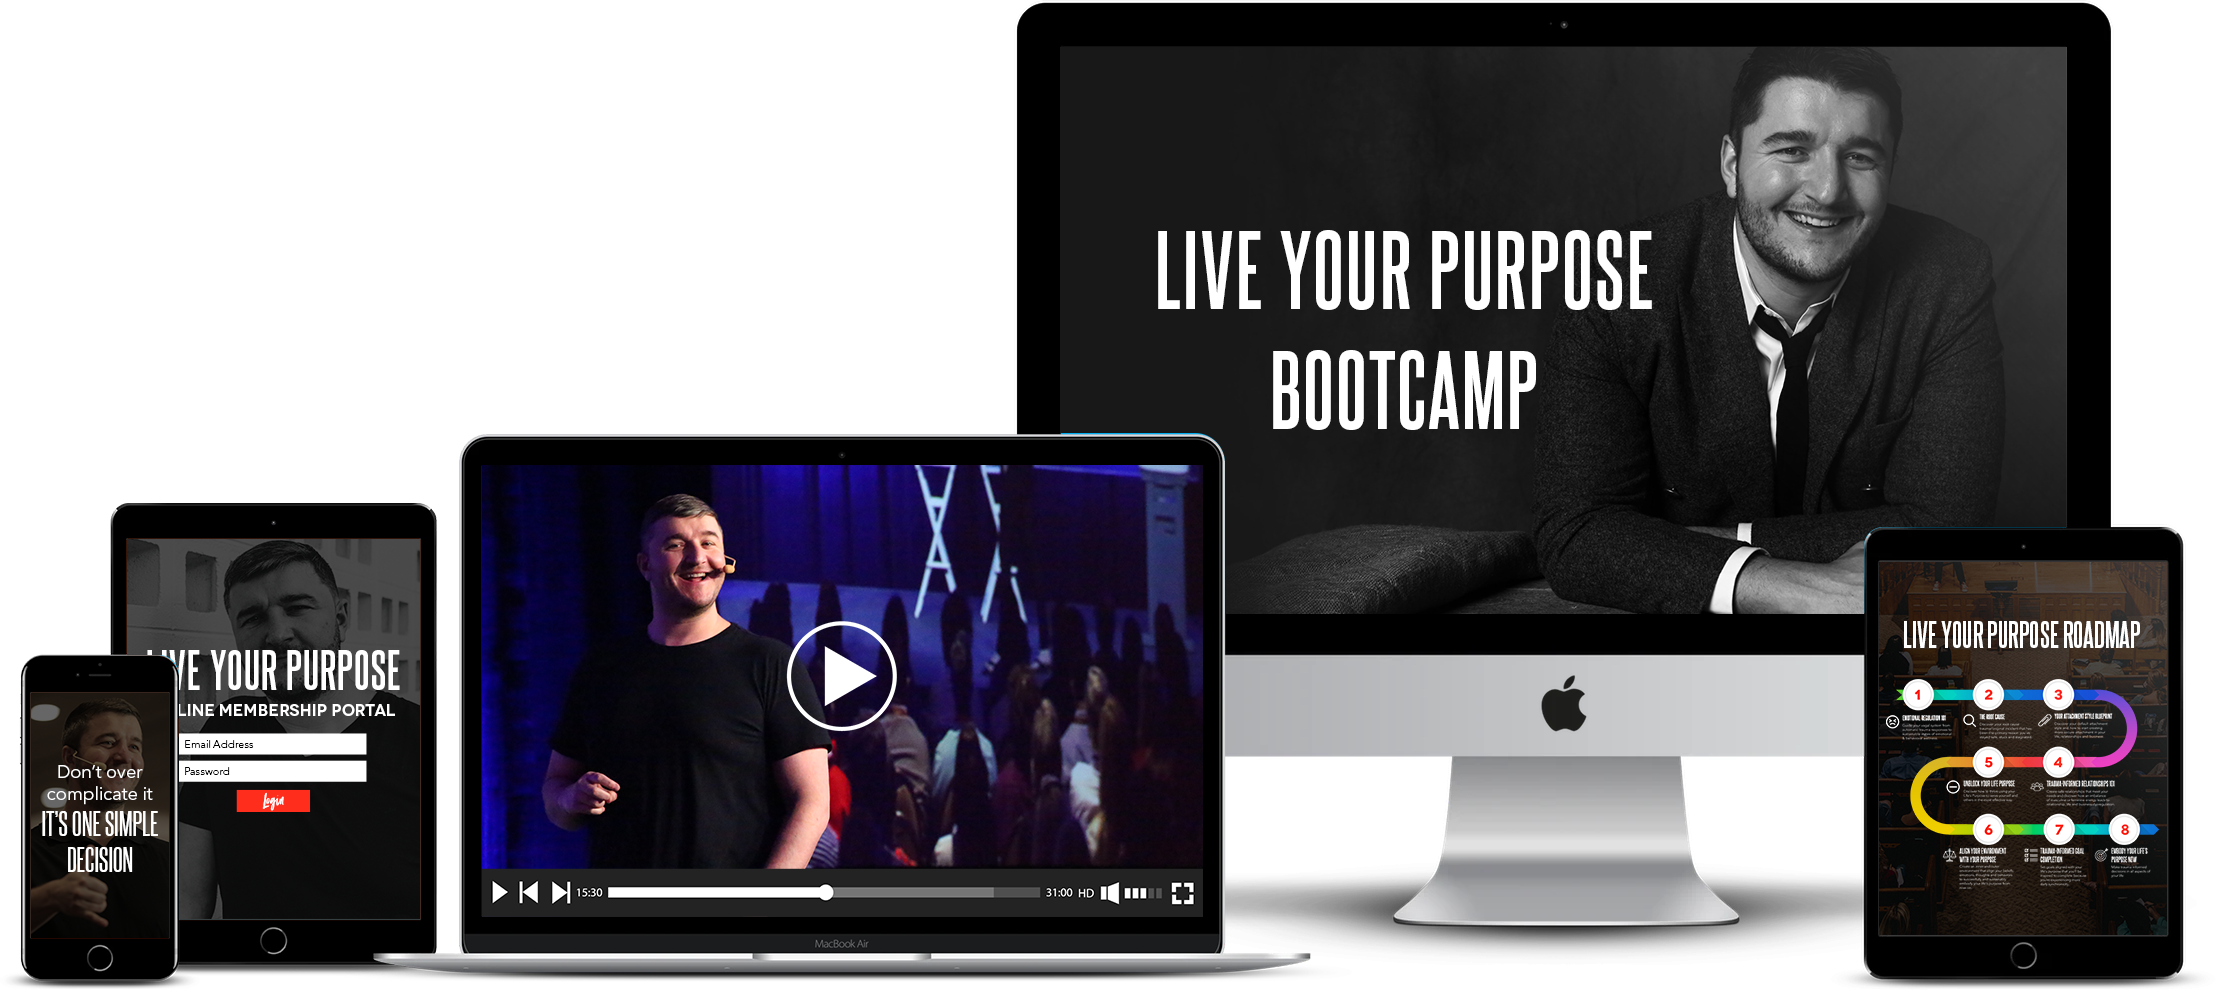 Live Your Purpose Bootcamp